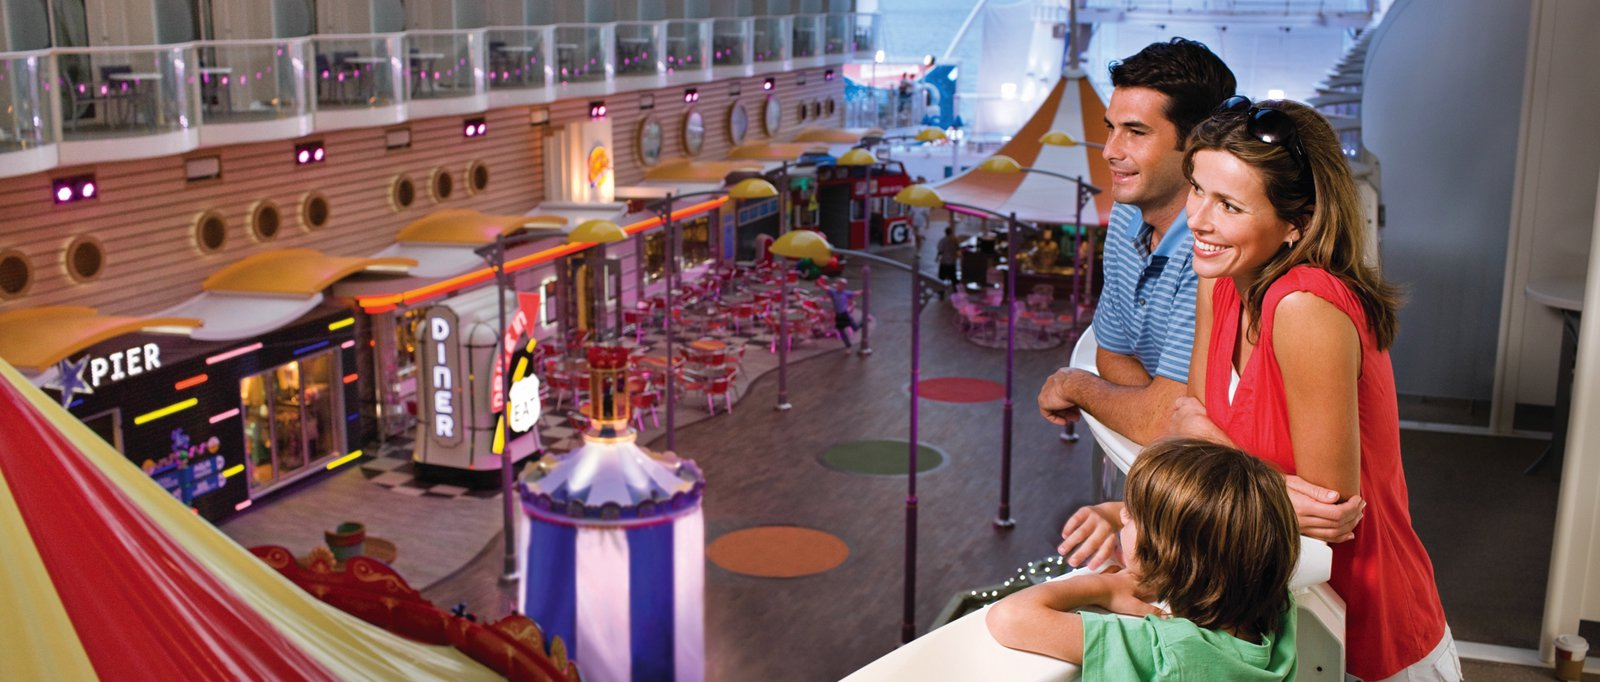 Royal Caribbean Offering Complimentary Perks For